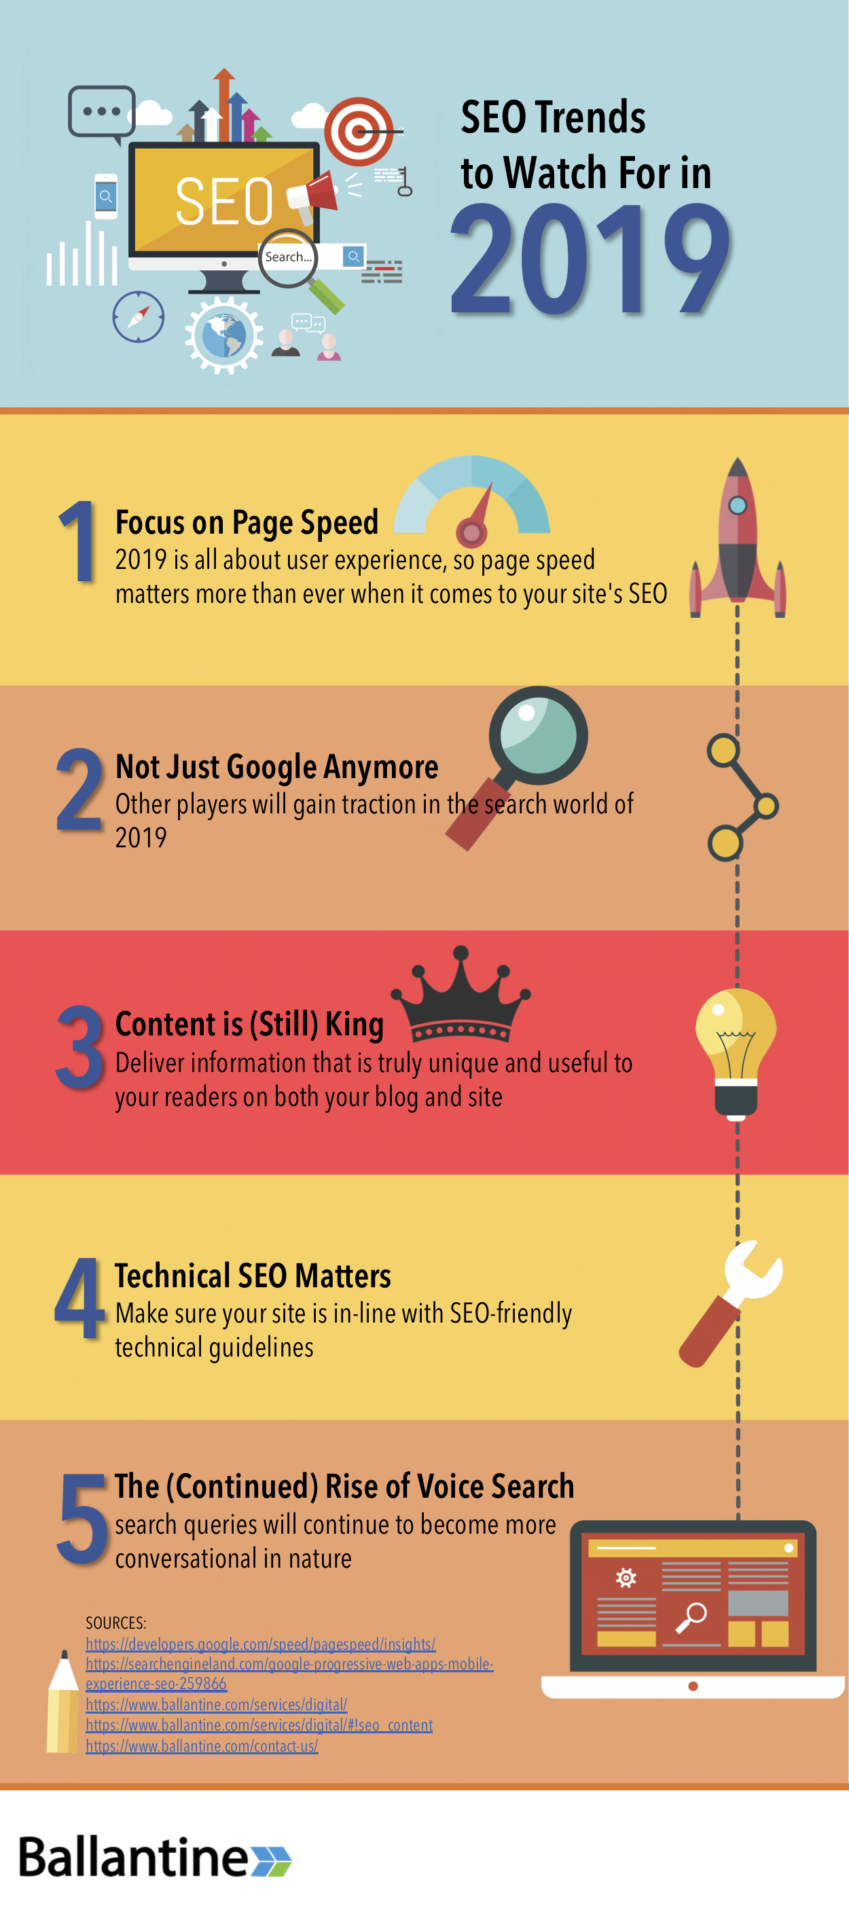 Seo trends 2019, Digital marketing trends for 2019